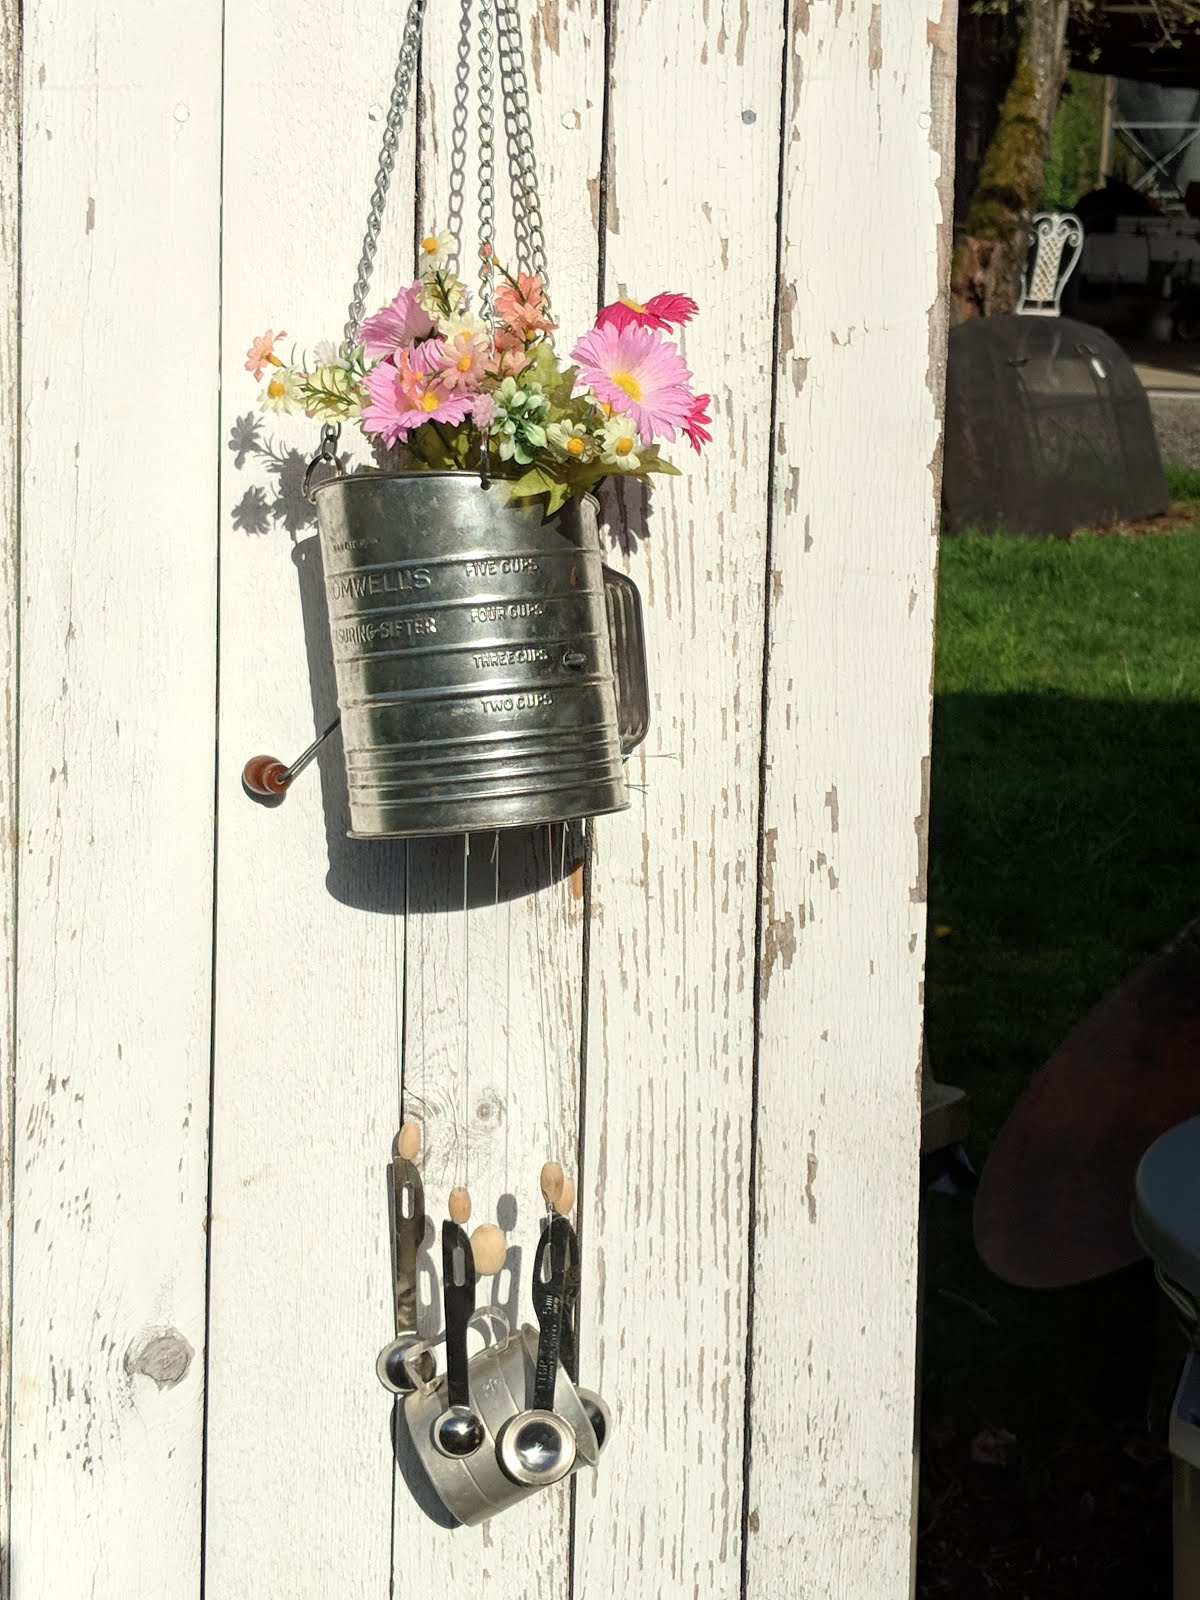 FLOUR SIFTER WIND CHIMES PLANTER WORKSHOP